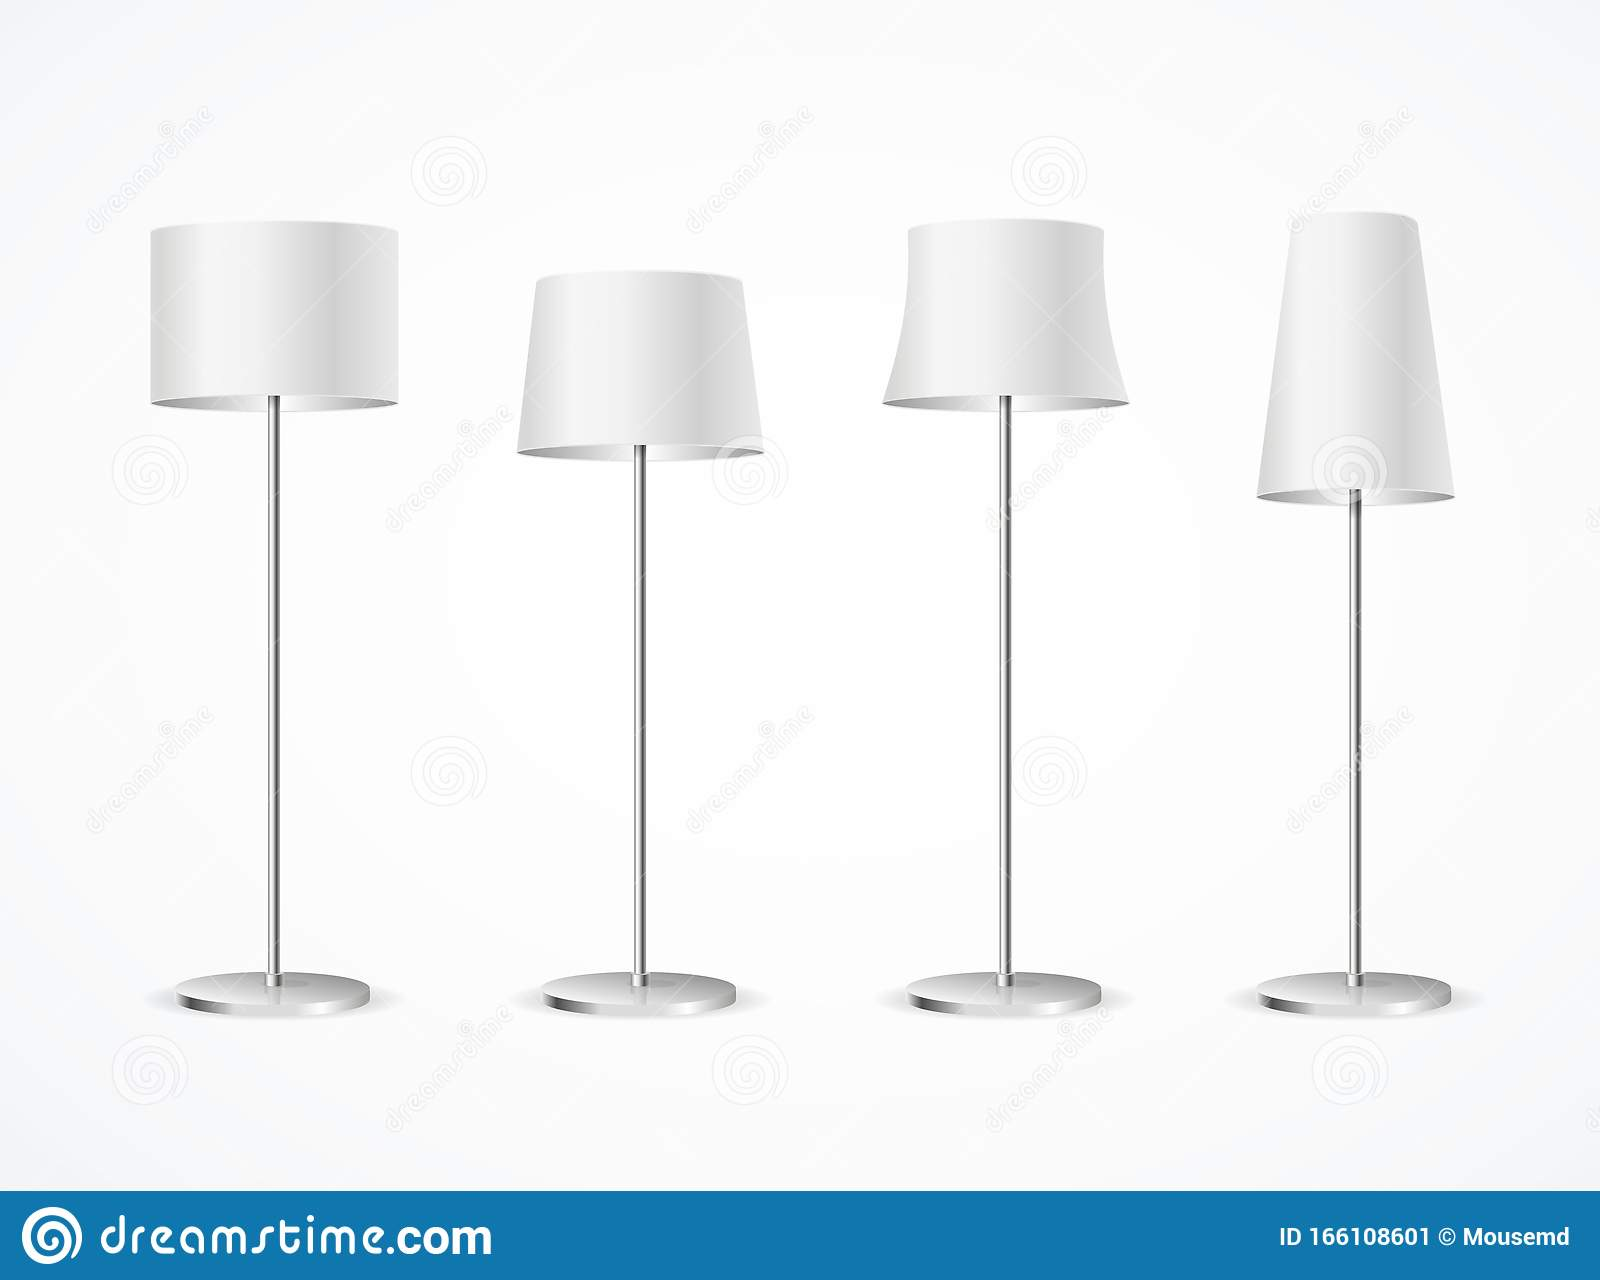 Picture of: Realistic Detailed 3d White Blank Floor Lamp Set Vector Stock Vector Illustration Of Empty Illuminated 166108601